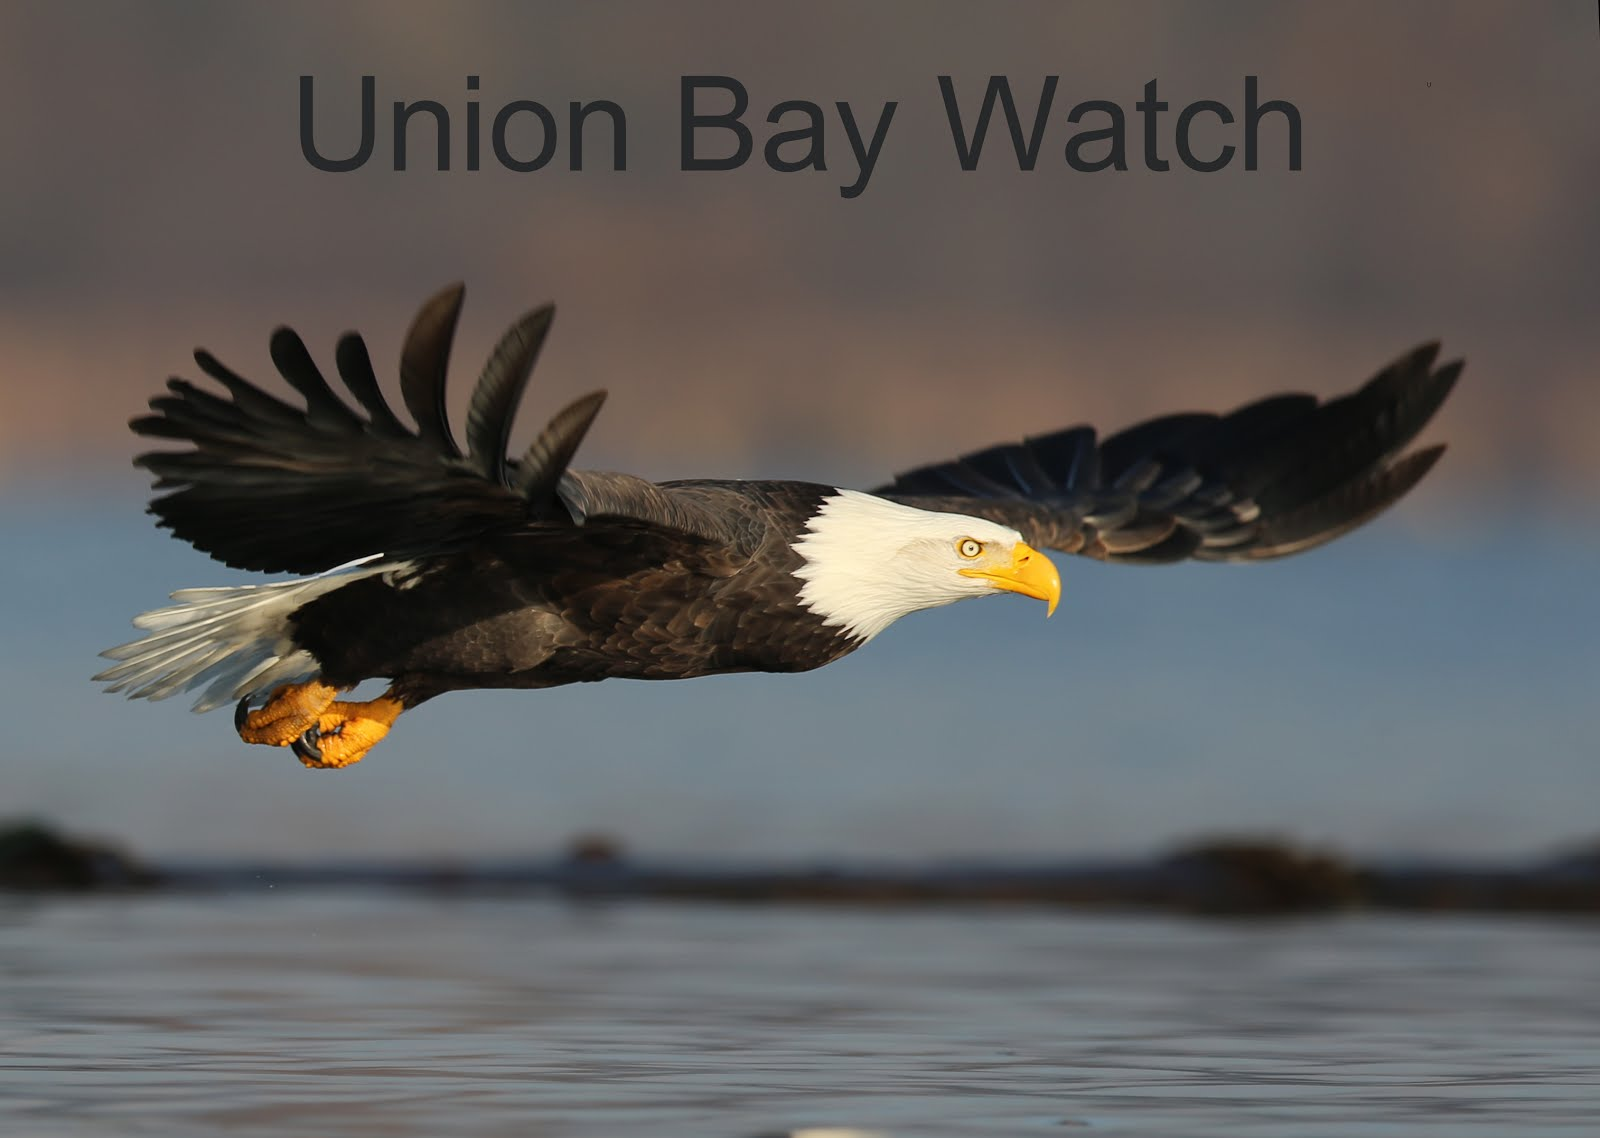 Union Bay Watch